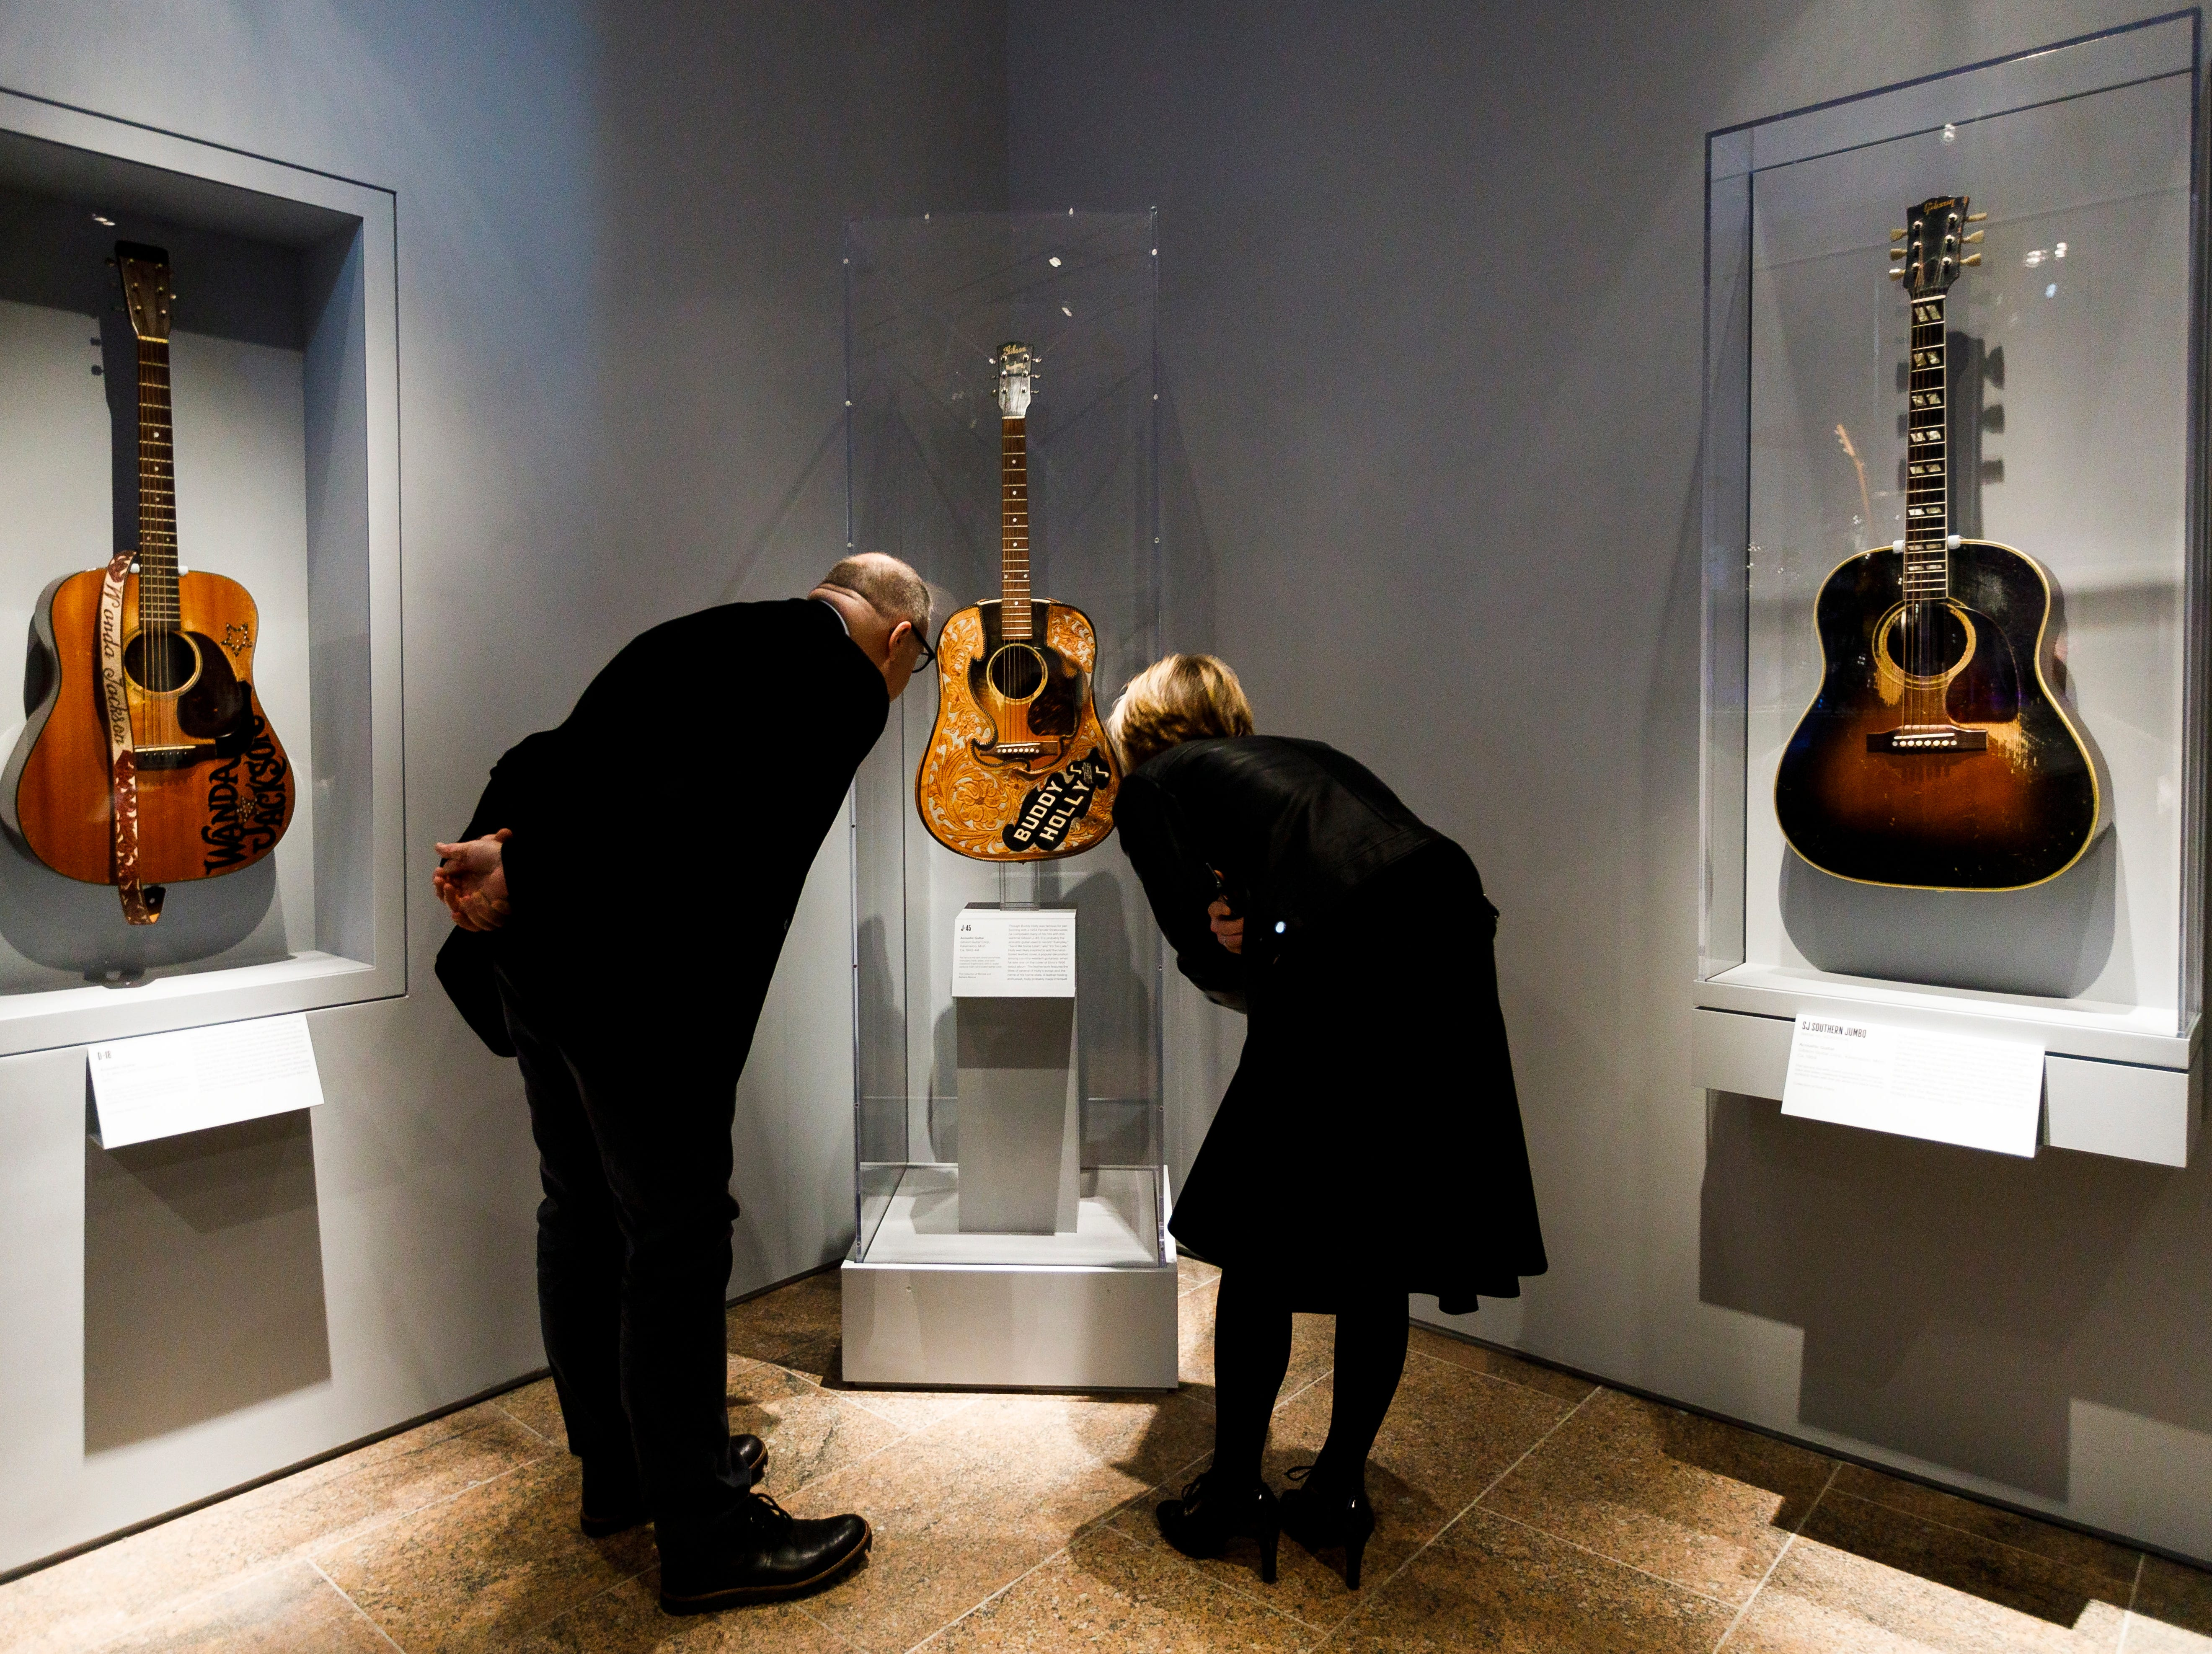 """Two people look at guitars owned by Buddy Holly, center, with guitars owned by Wanda Jackson, left, and Don Everly during a preview of the new exhibit """"Play It Loud: Instruments of Rock & Roll"""" at the Metropolitan Museum of Art in New York, New York on April 1, 2019. The exhibit features over 130 musical instruments, including many electric guitars, from iconic rock and roll musicians dating from 1939 to 2017 including The Beatles, Chuck Berry, Jimmy Page, Elvis Presley, and Jimi Hendrix. It runs from April 8 until October 1, 2019."""